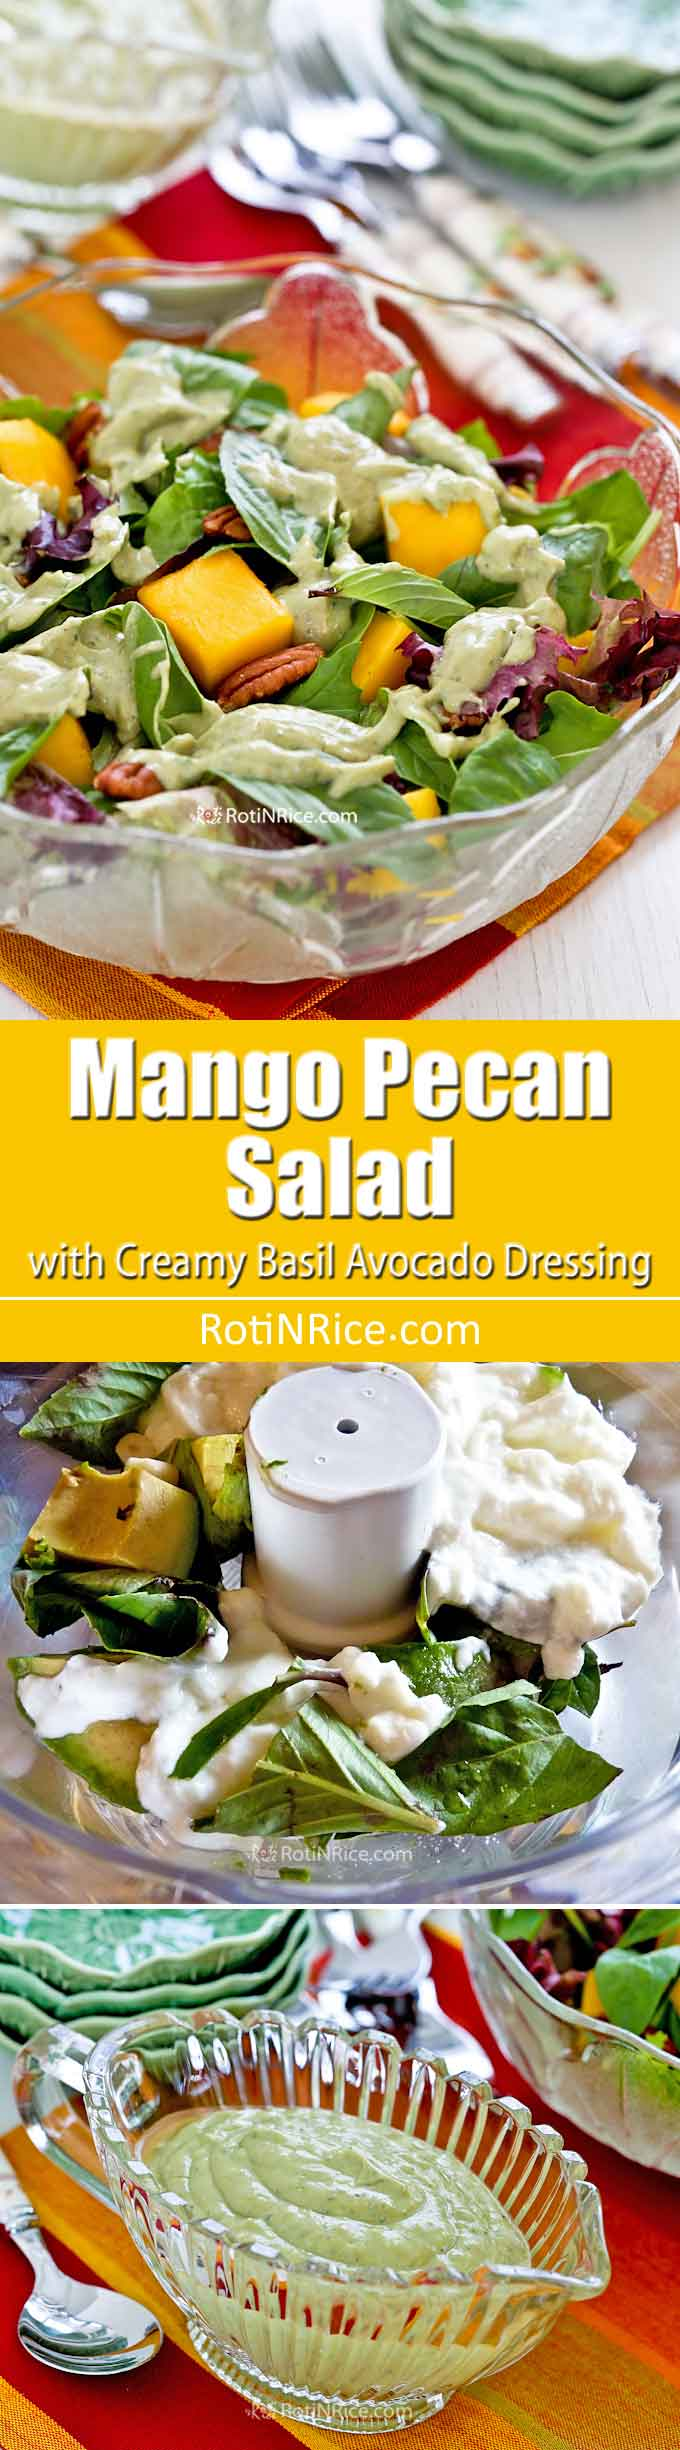 Tickle your taste buds with this Mango Pecan Salad with Creamy Basil Avocado Dressing. It is sweet, tangy, and refreshing with a delightful crunch. | RotiNRice.com